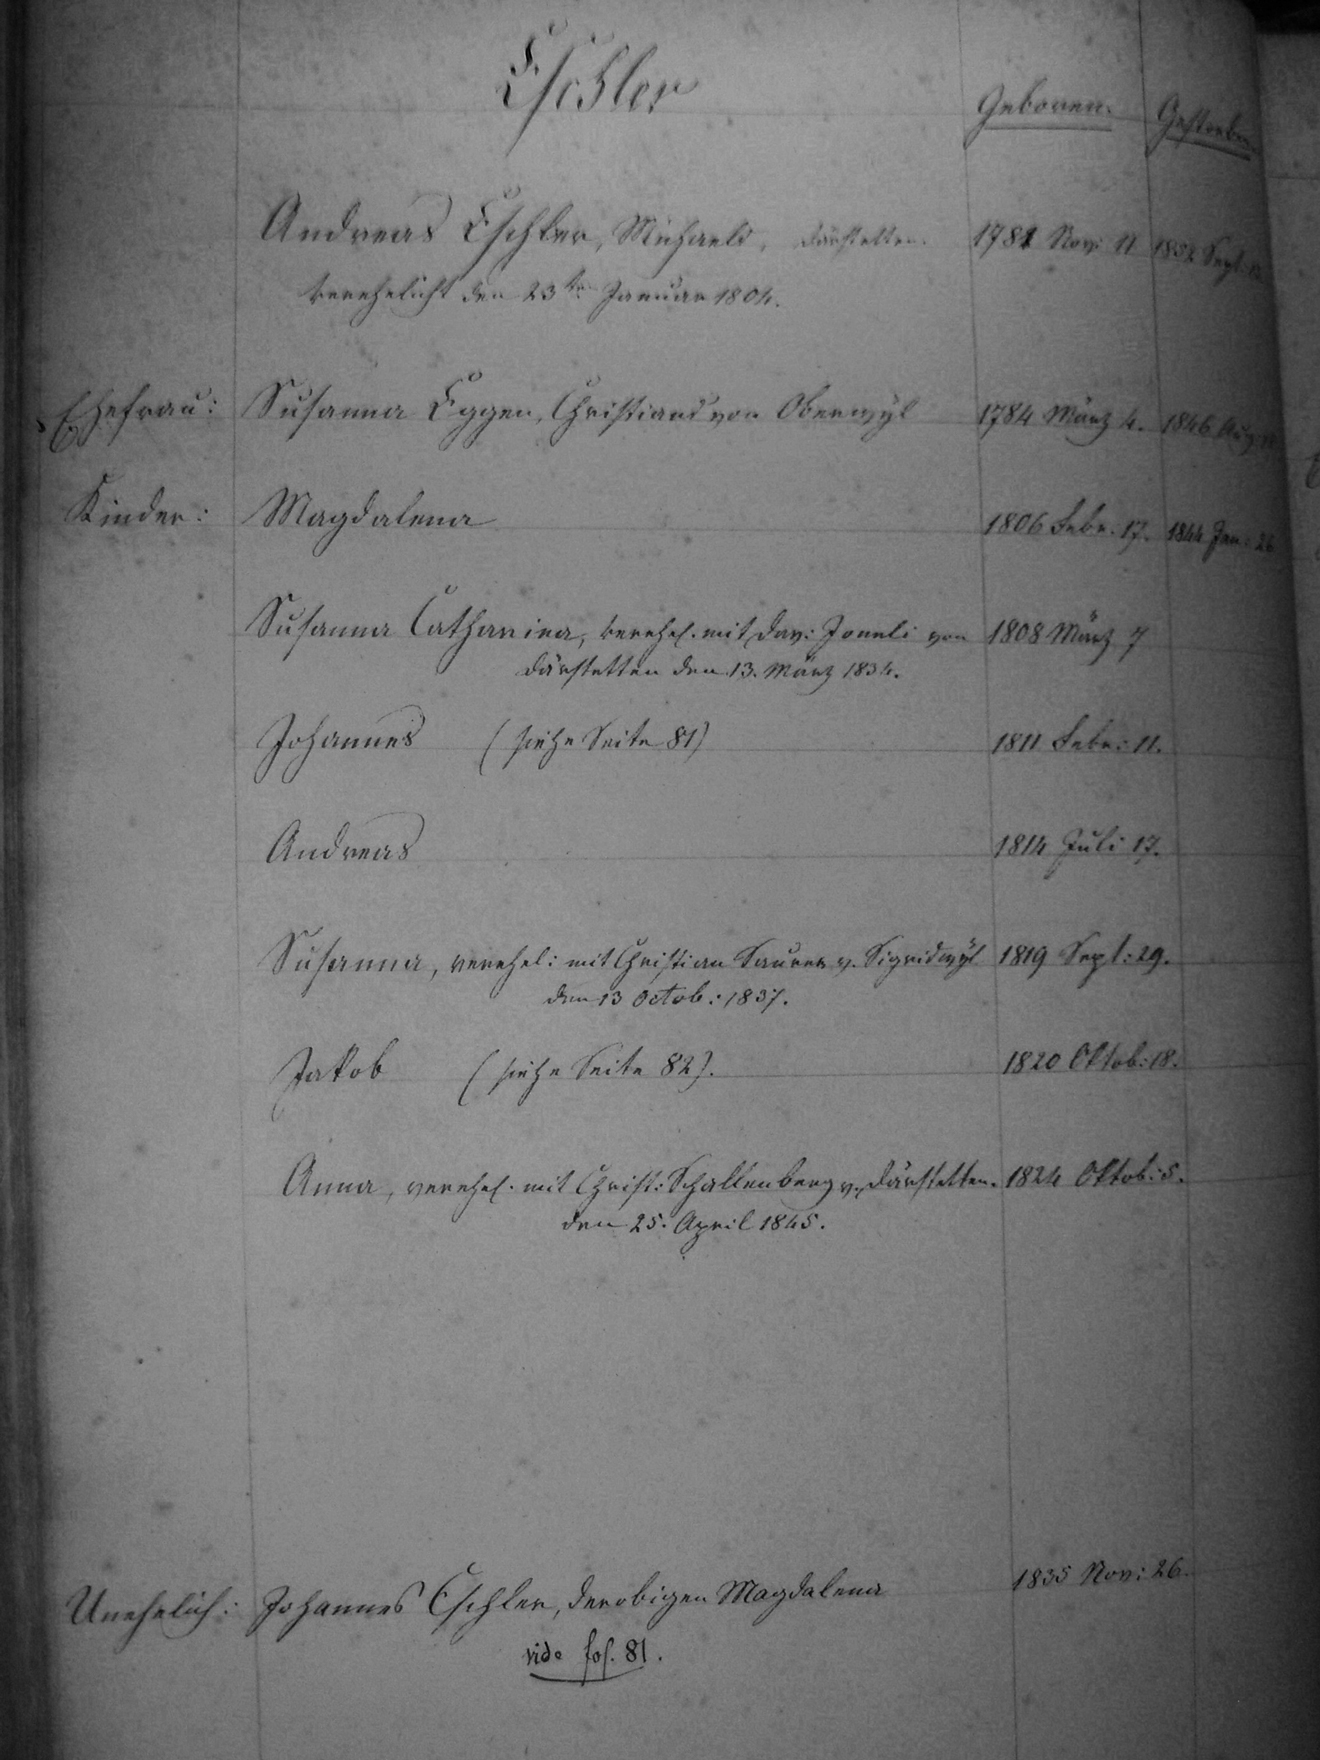 The Family of Andreas and Susanna (Eggen) Eschler from the Citizens Registers of Boltigen